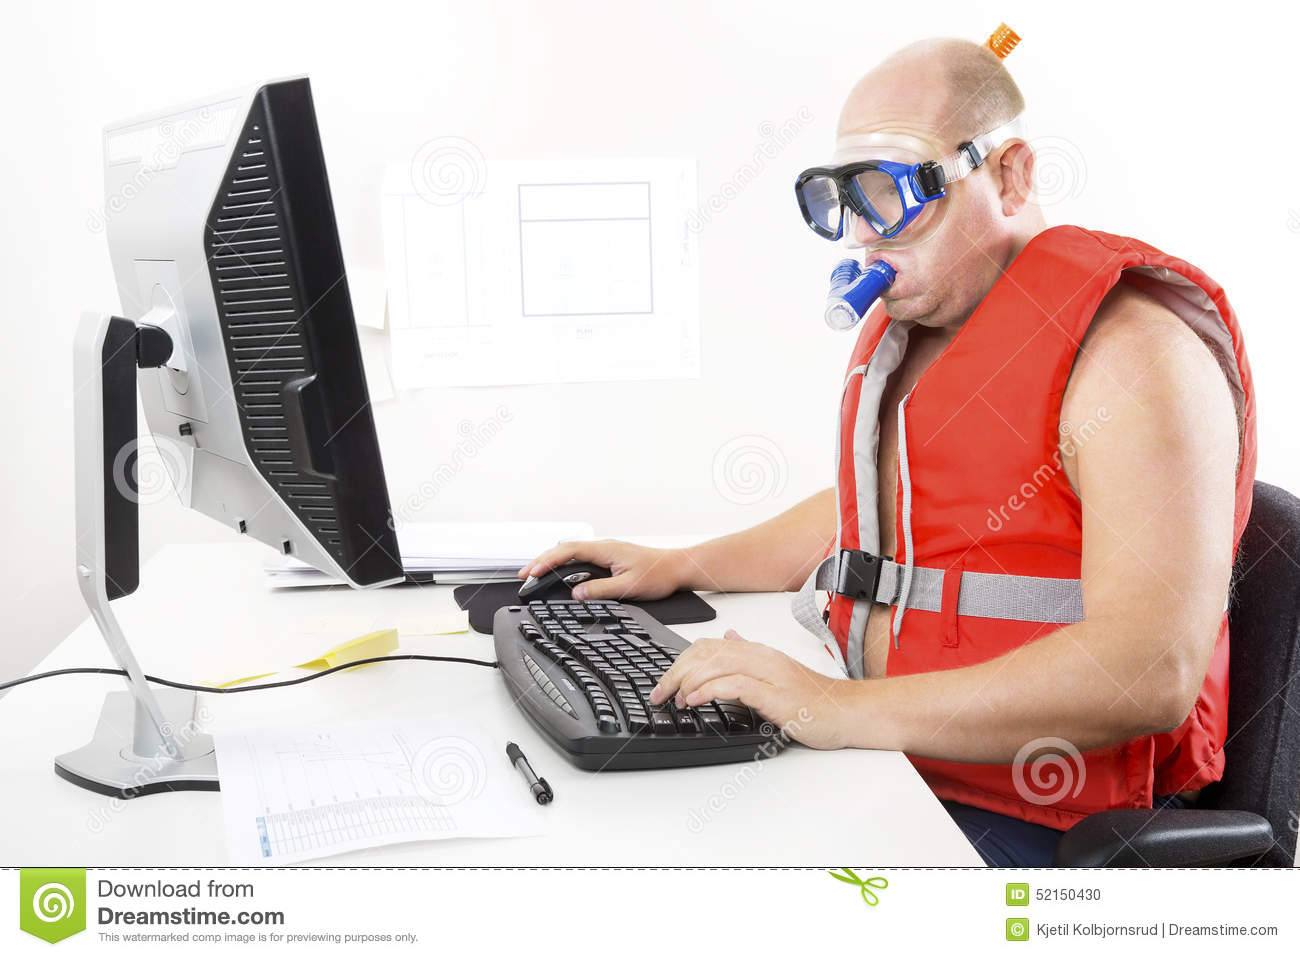 Royalty Free Stock Images Fish Diver Image6410429 together with Watch besides Tufted Puffin furthermore ec 8a a4 ec bf a0 eb b2 84 eb 8b a4 ec 9d b4 eb b9 99  ec 9d bc eb 9f ac ec 8a a4 ed 8a b8 Ai  eb ac b4 eb a3 8c eb 8b a4 ec 9a b4 eb a1 9c eb 93 9c Scuba Diving Illustration as well Diving In Similan Islands. on diving mask